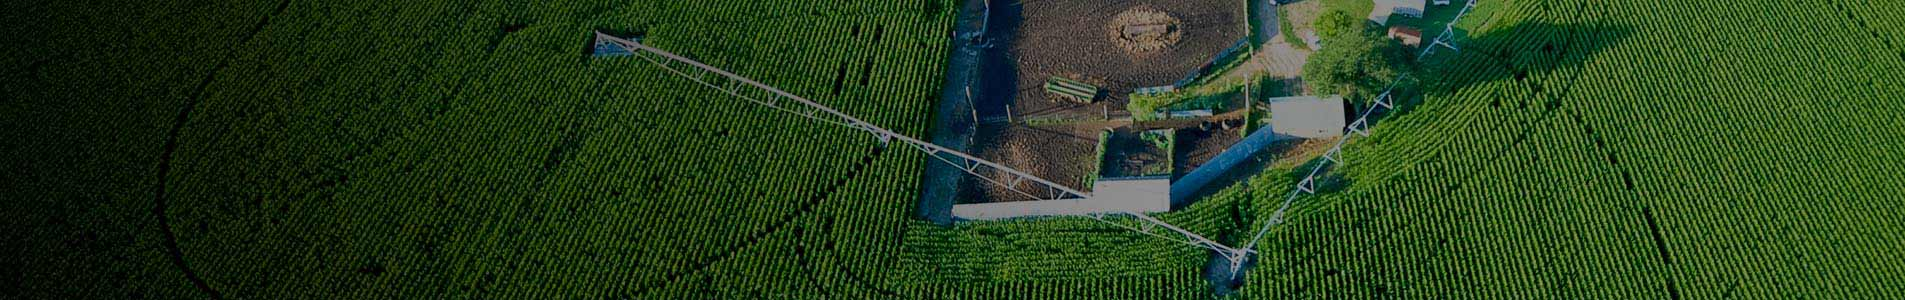 valley bender30 and bender160 irrigation systems